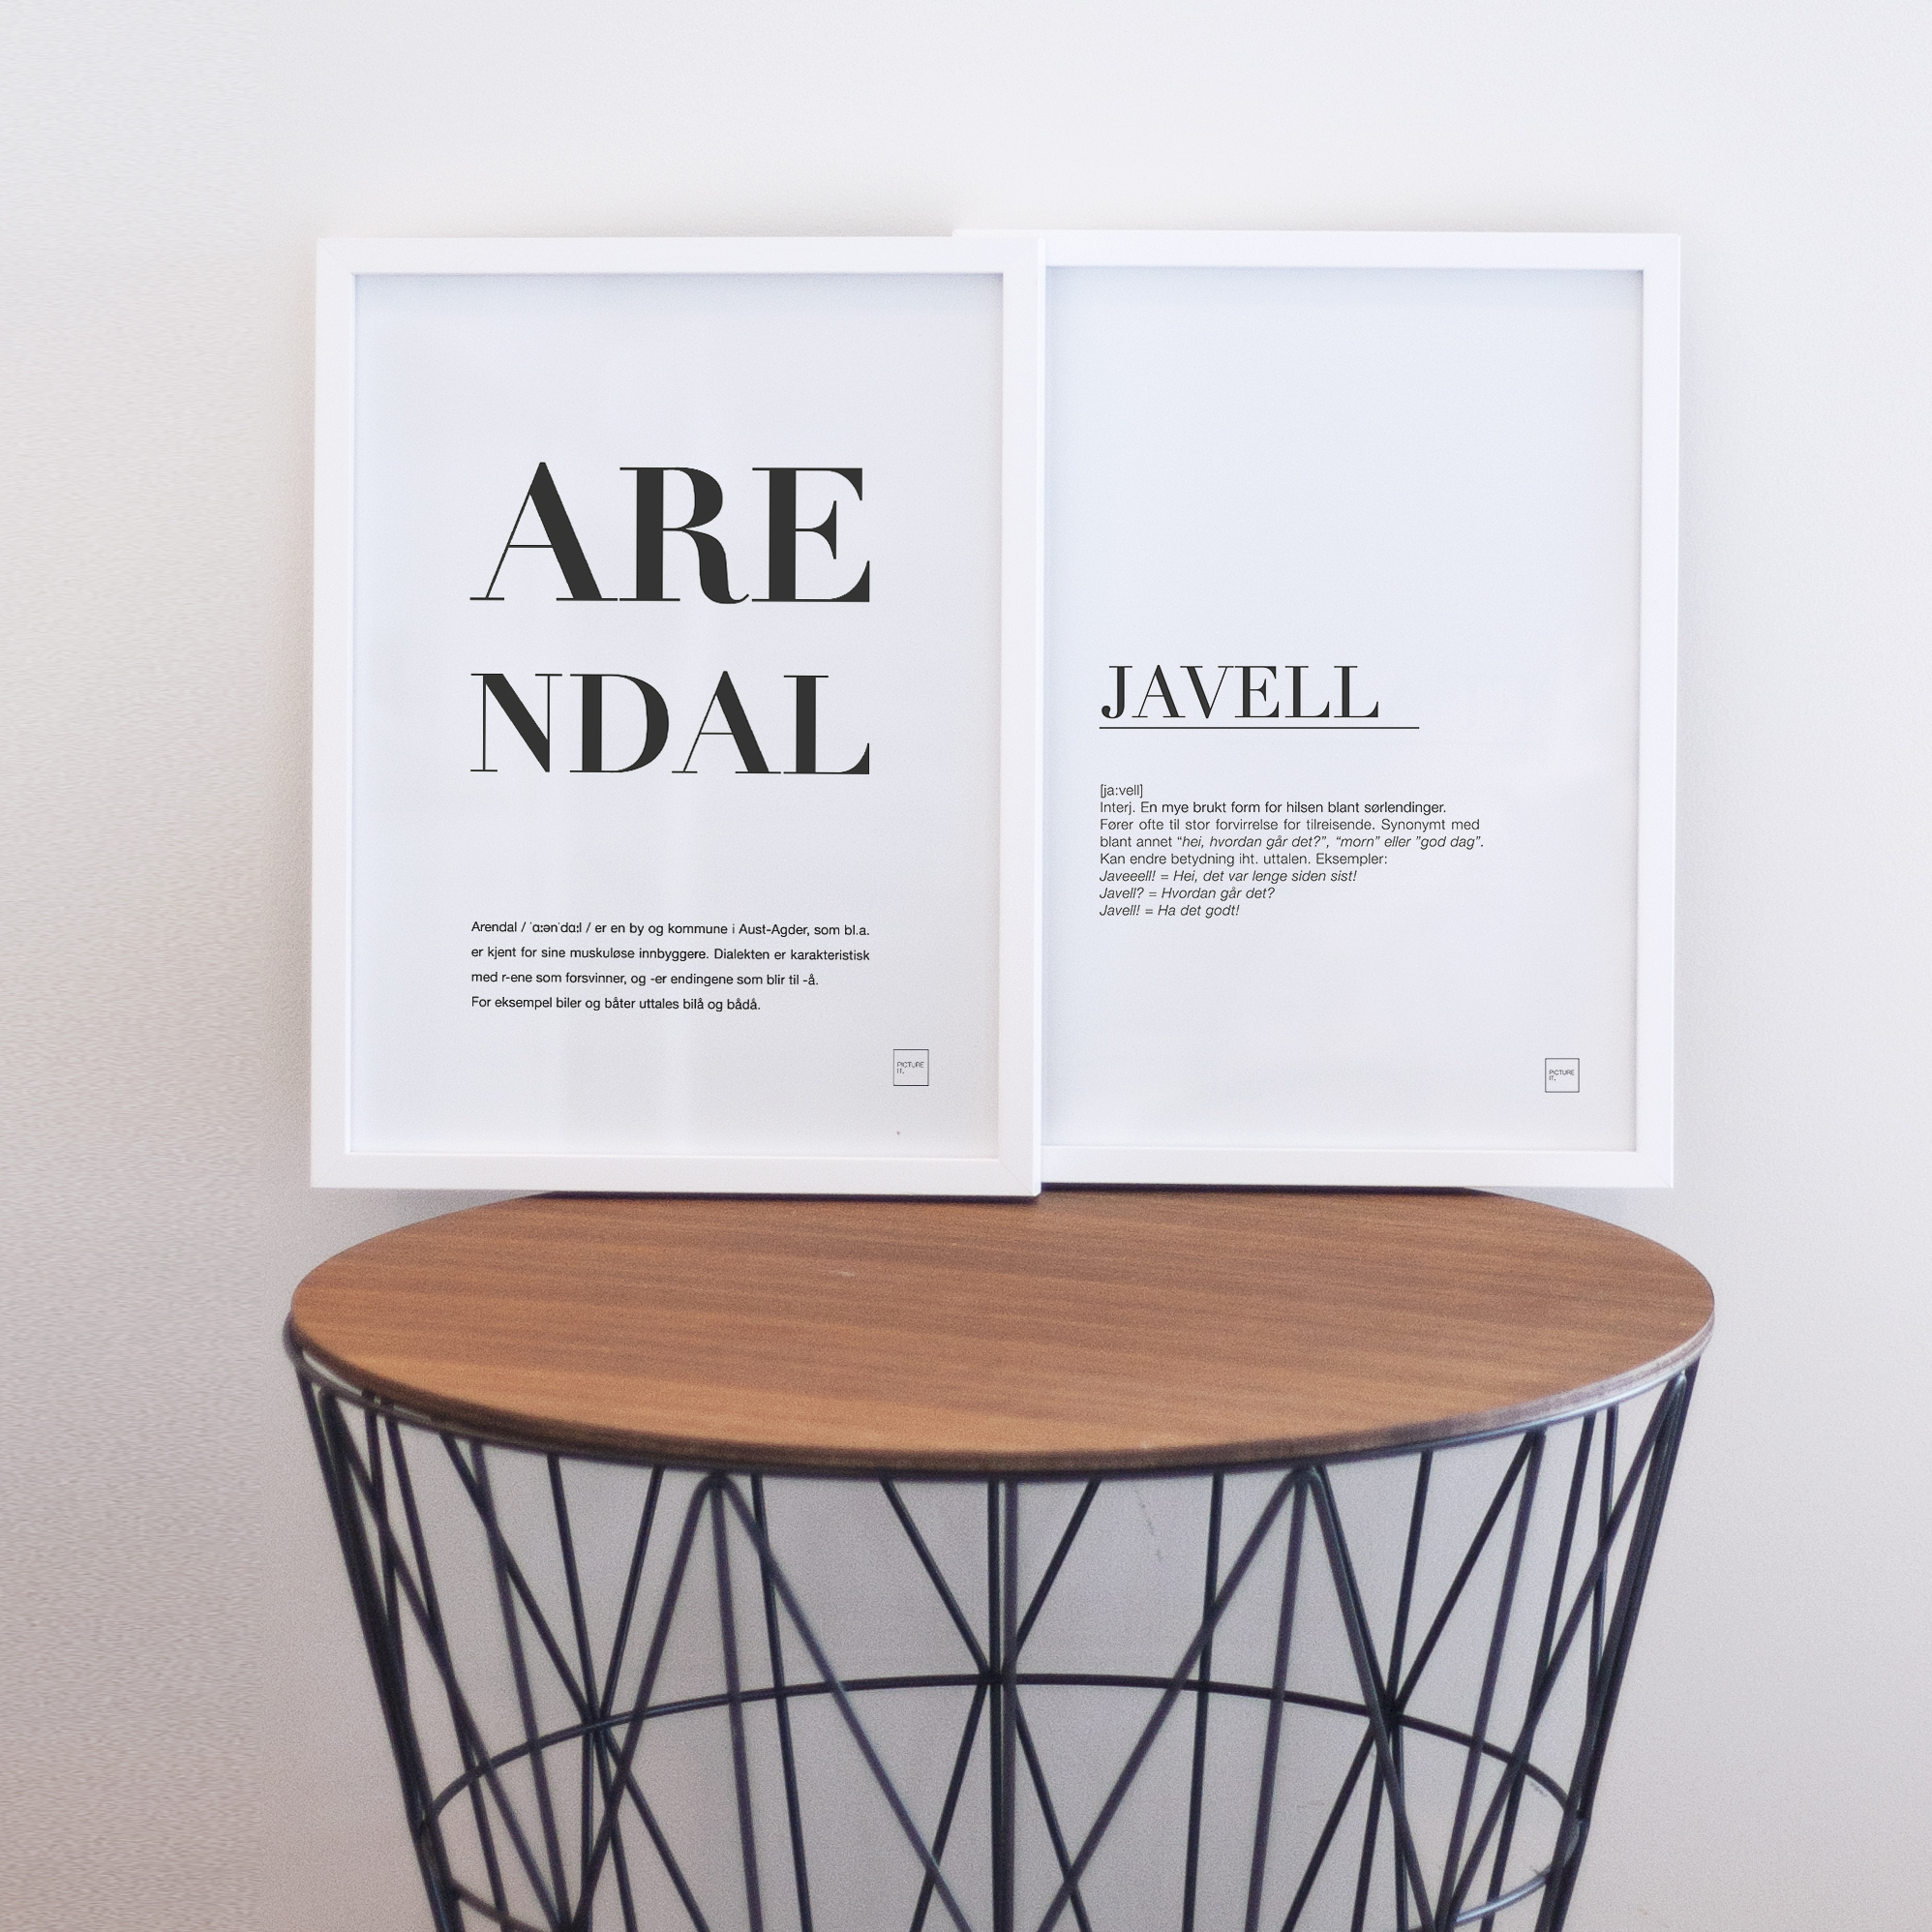 ARENDAL + JAVELL